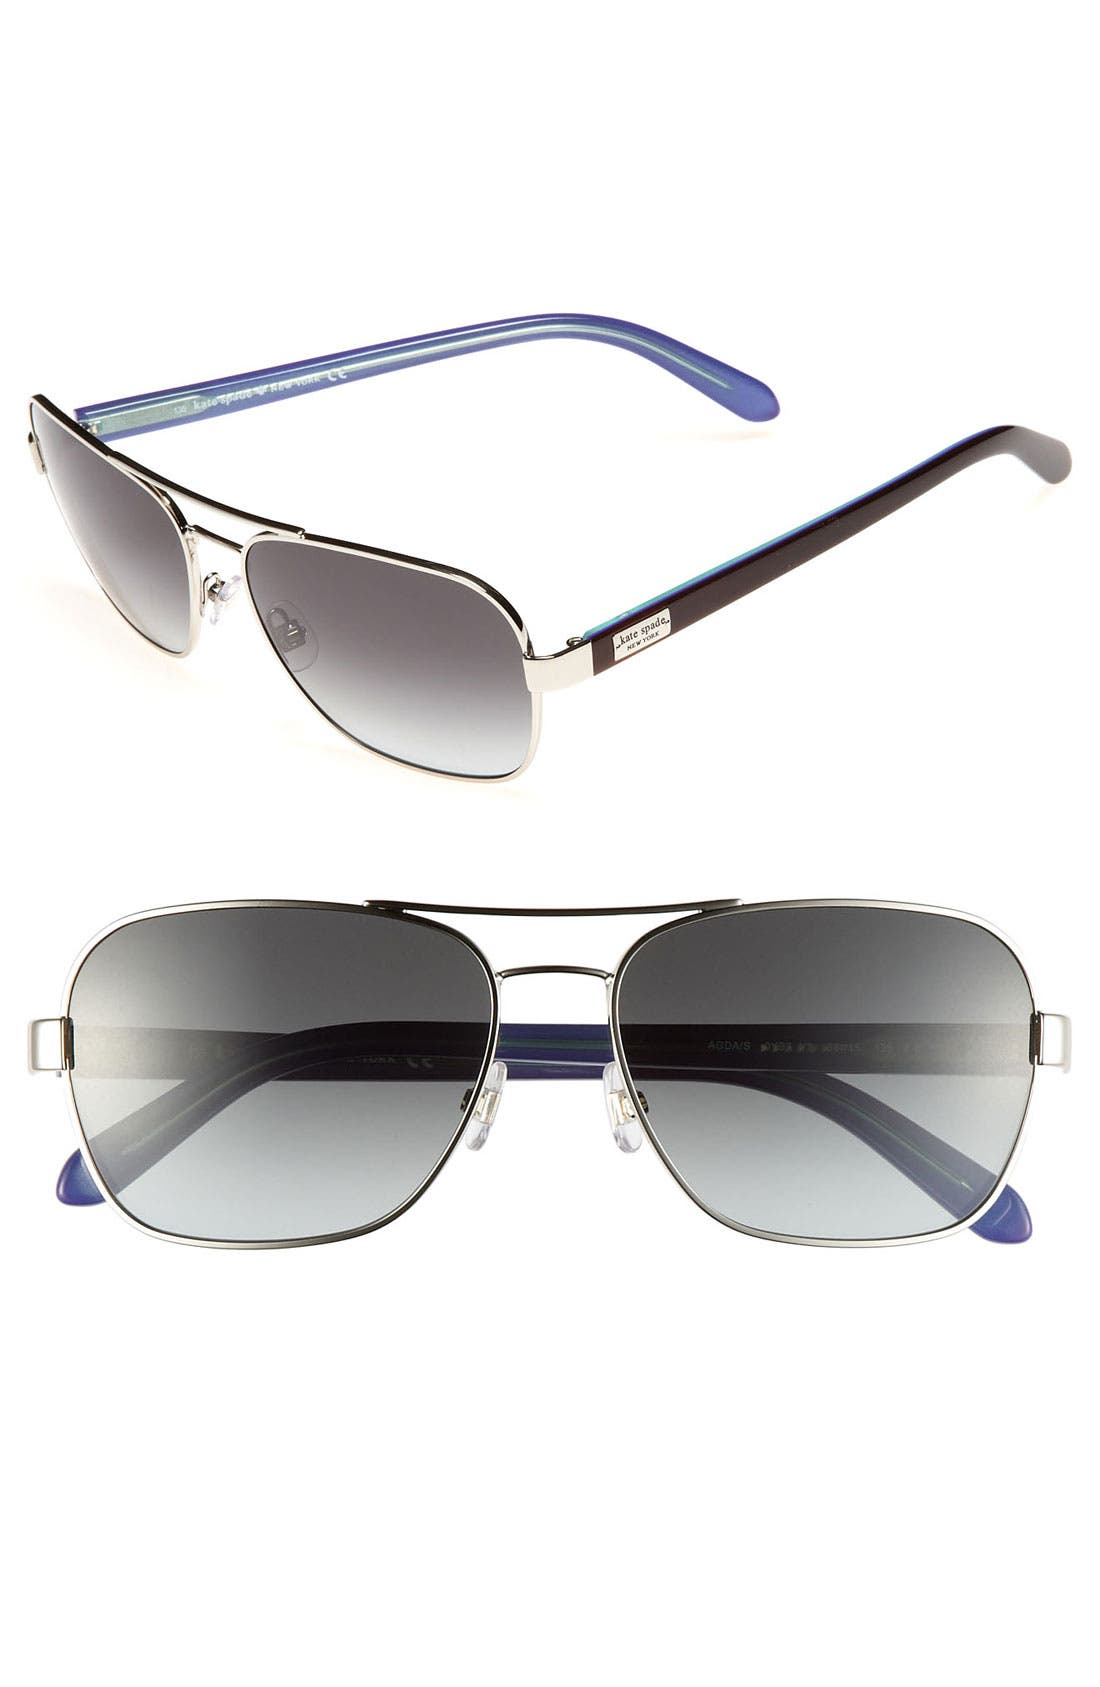 Alternate Image 1 Selected - kate spade new york 'agda' 56mm navigator sunglasses